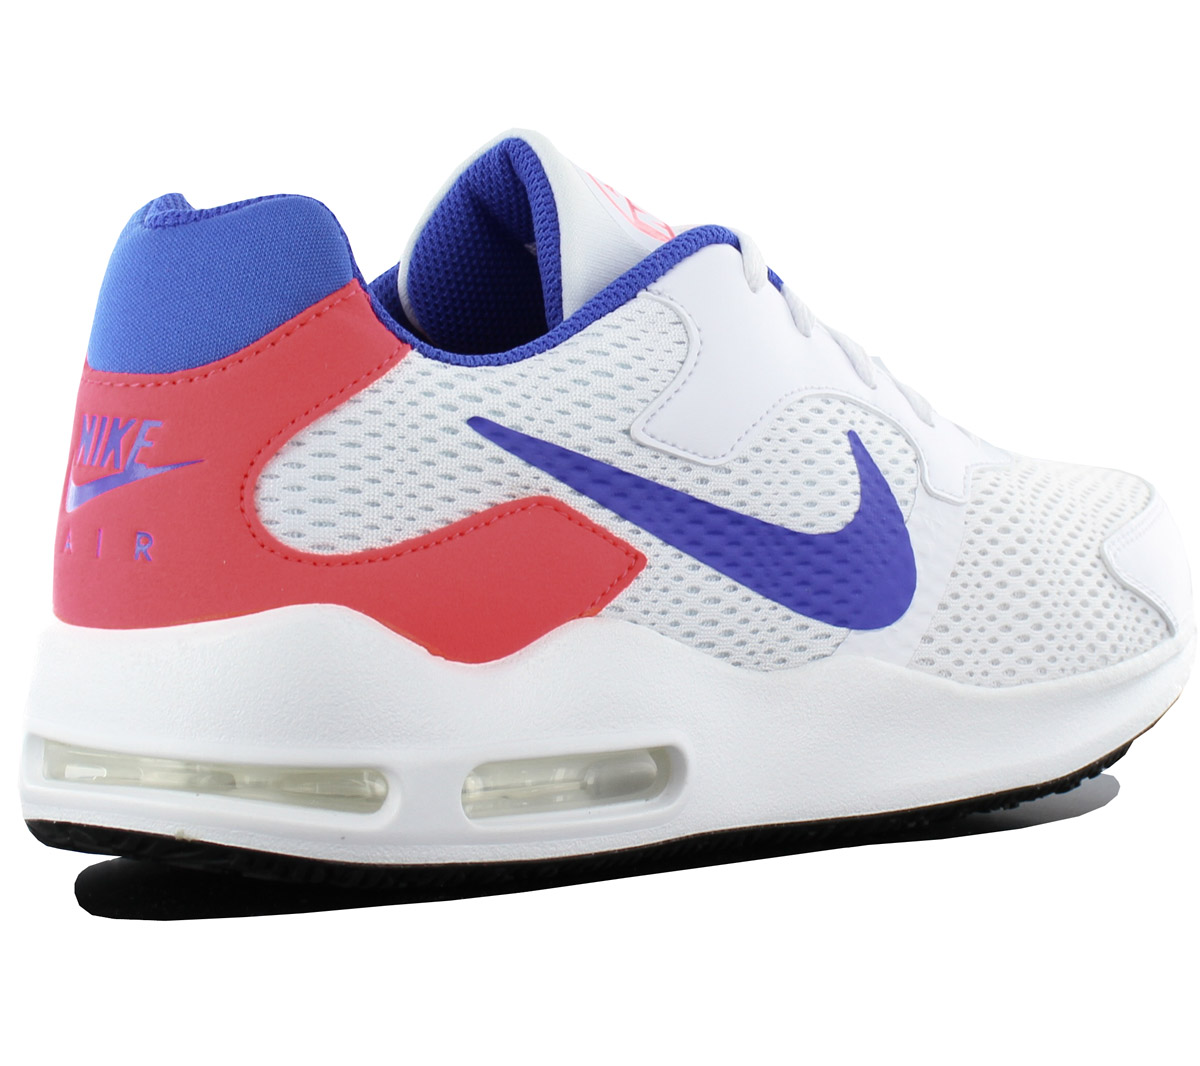 cc478e5960 NEW Nike Air Max Guile 916768-101 Men''s Shoes Trainers Sneakers ...